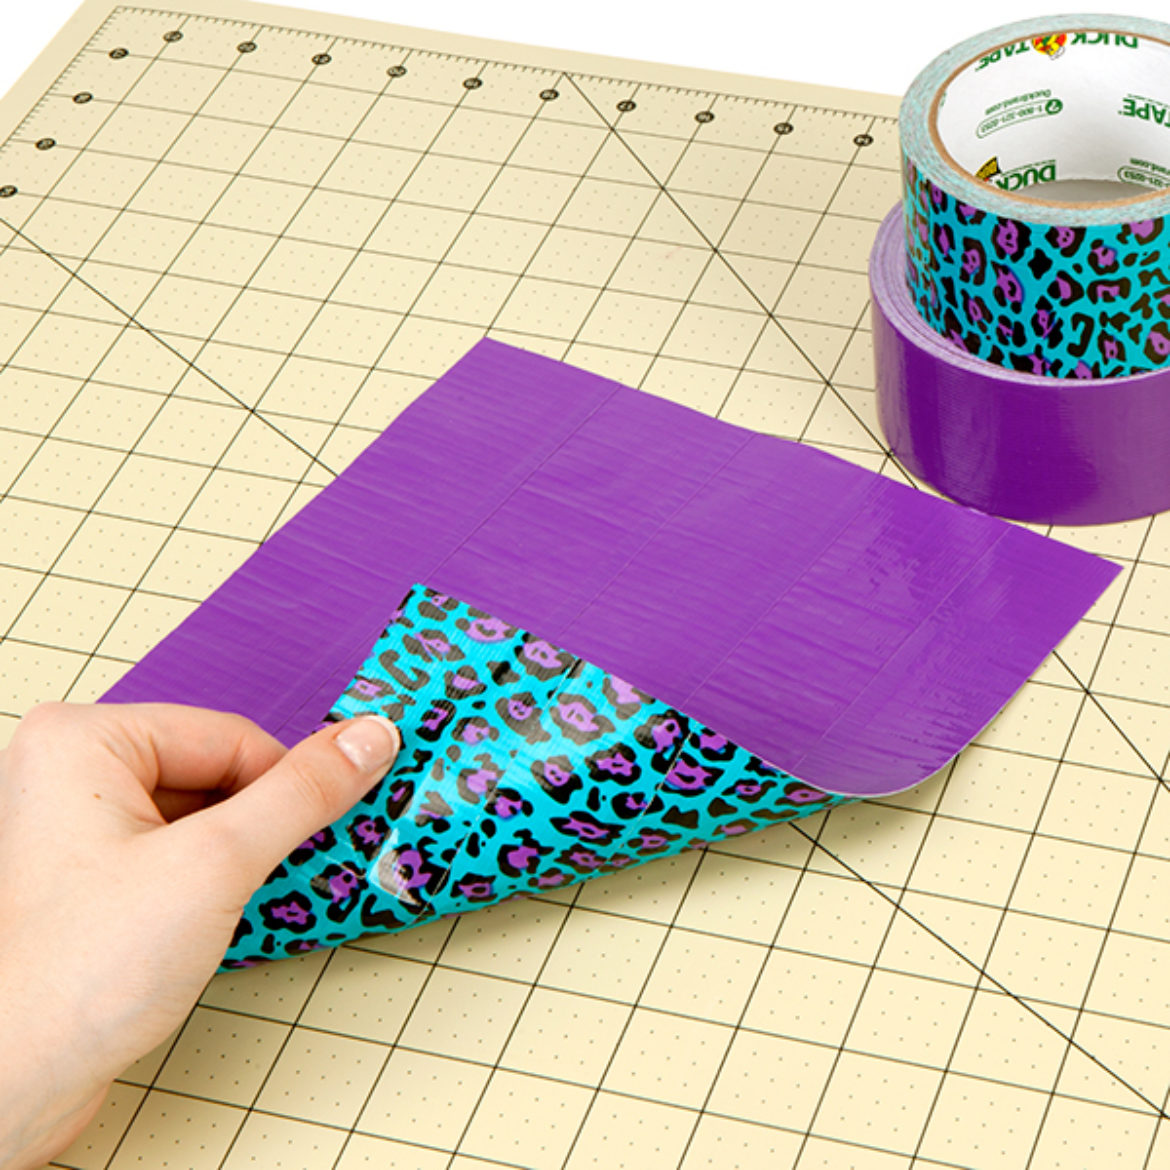 Duck Tape Fabric with one color on one side and another on the opposite